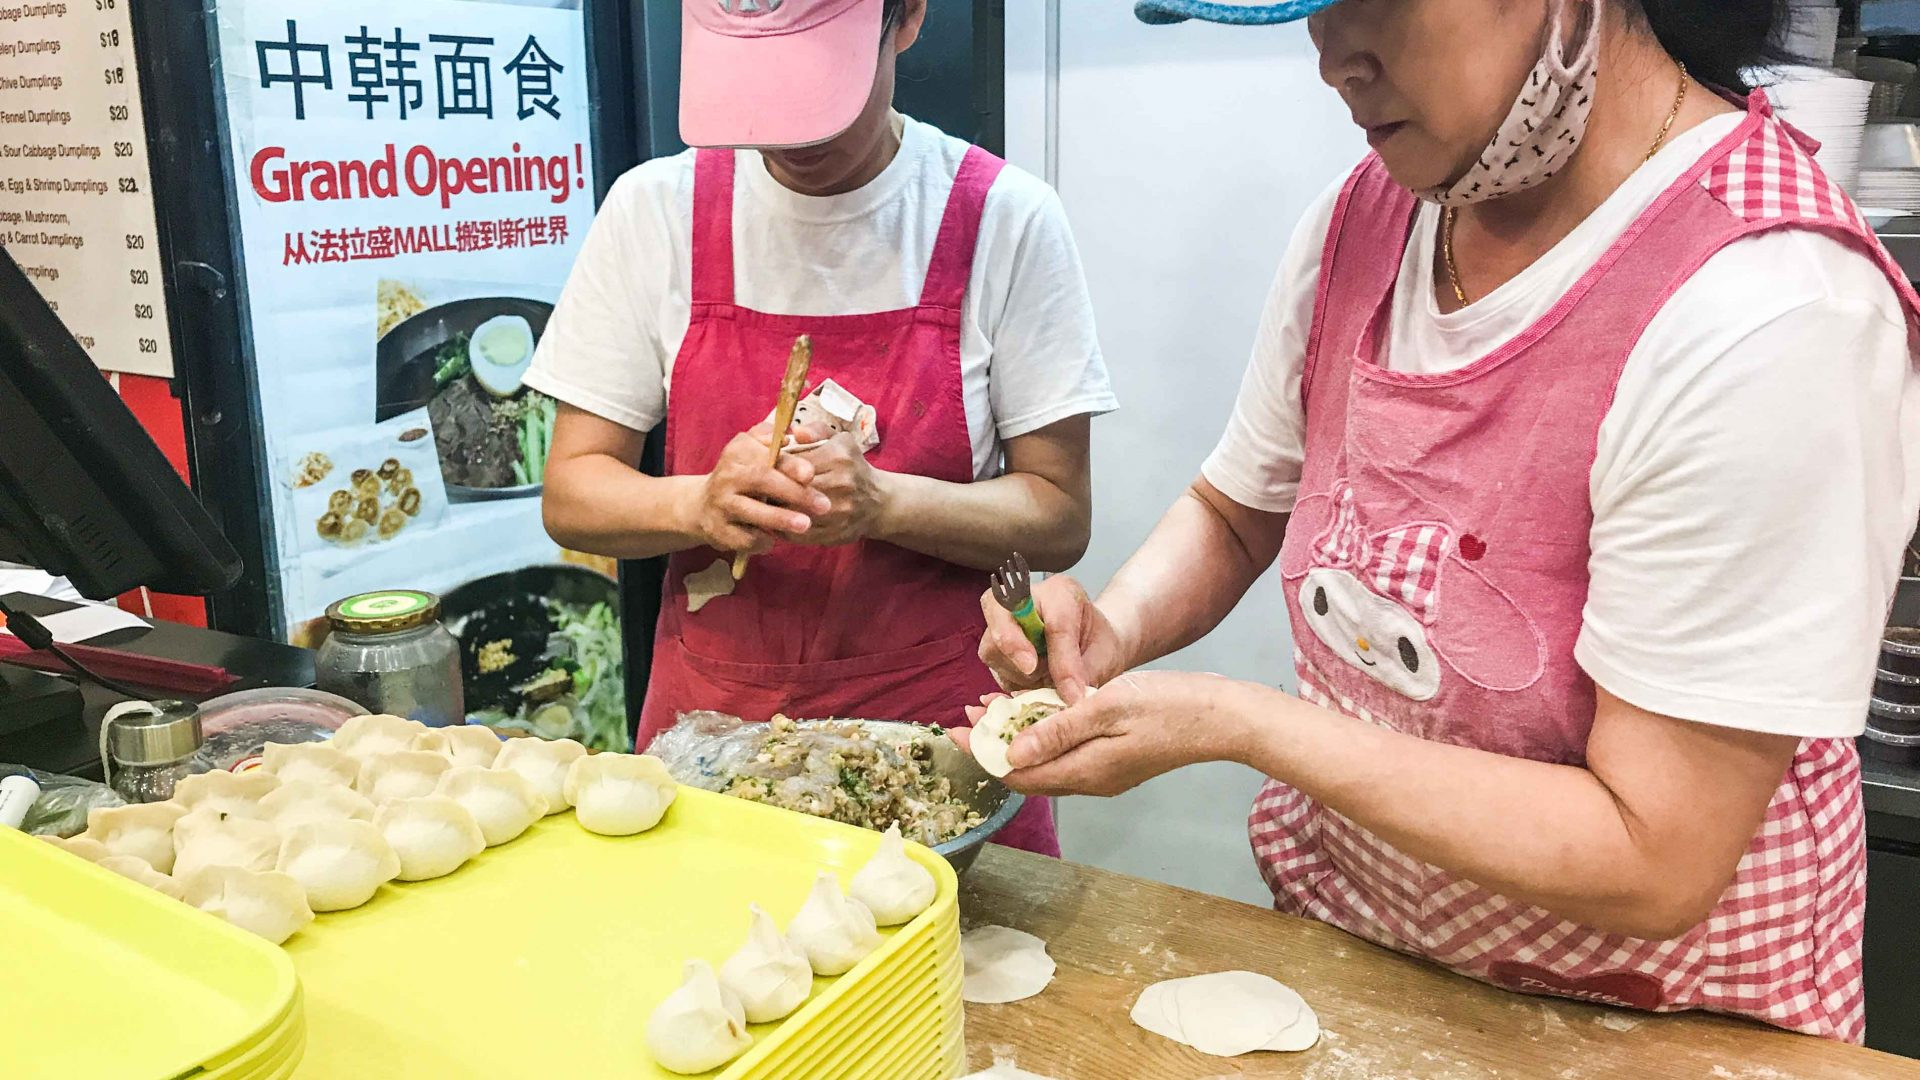 Women make dumplings in Flushing, Queens.